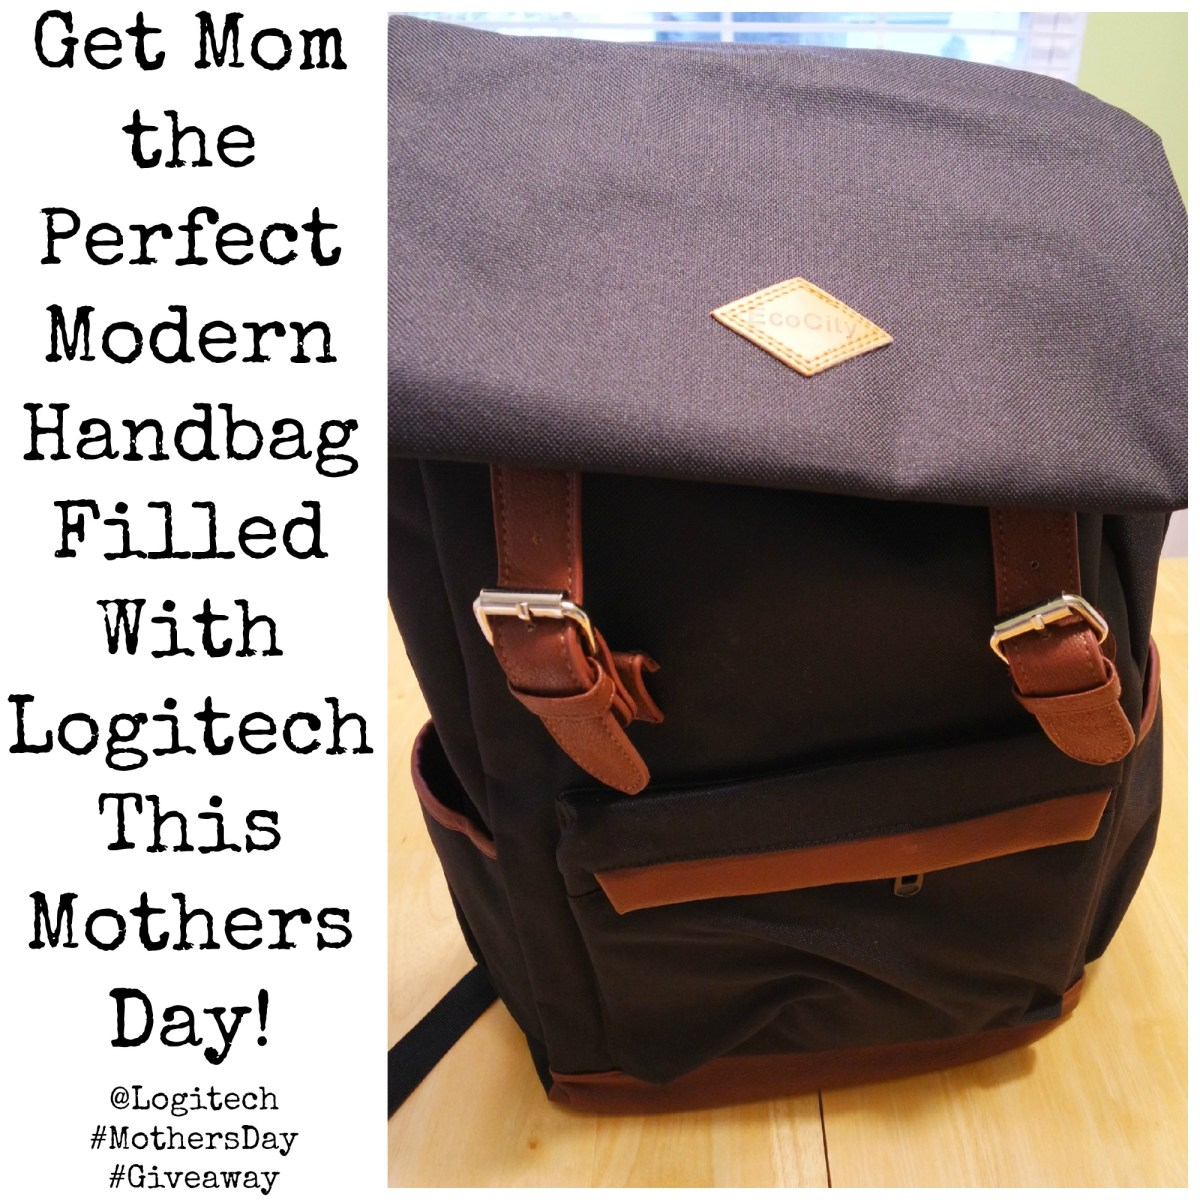 Getting the Perfect Modern Bag For Mom This Mothers Day